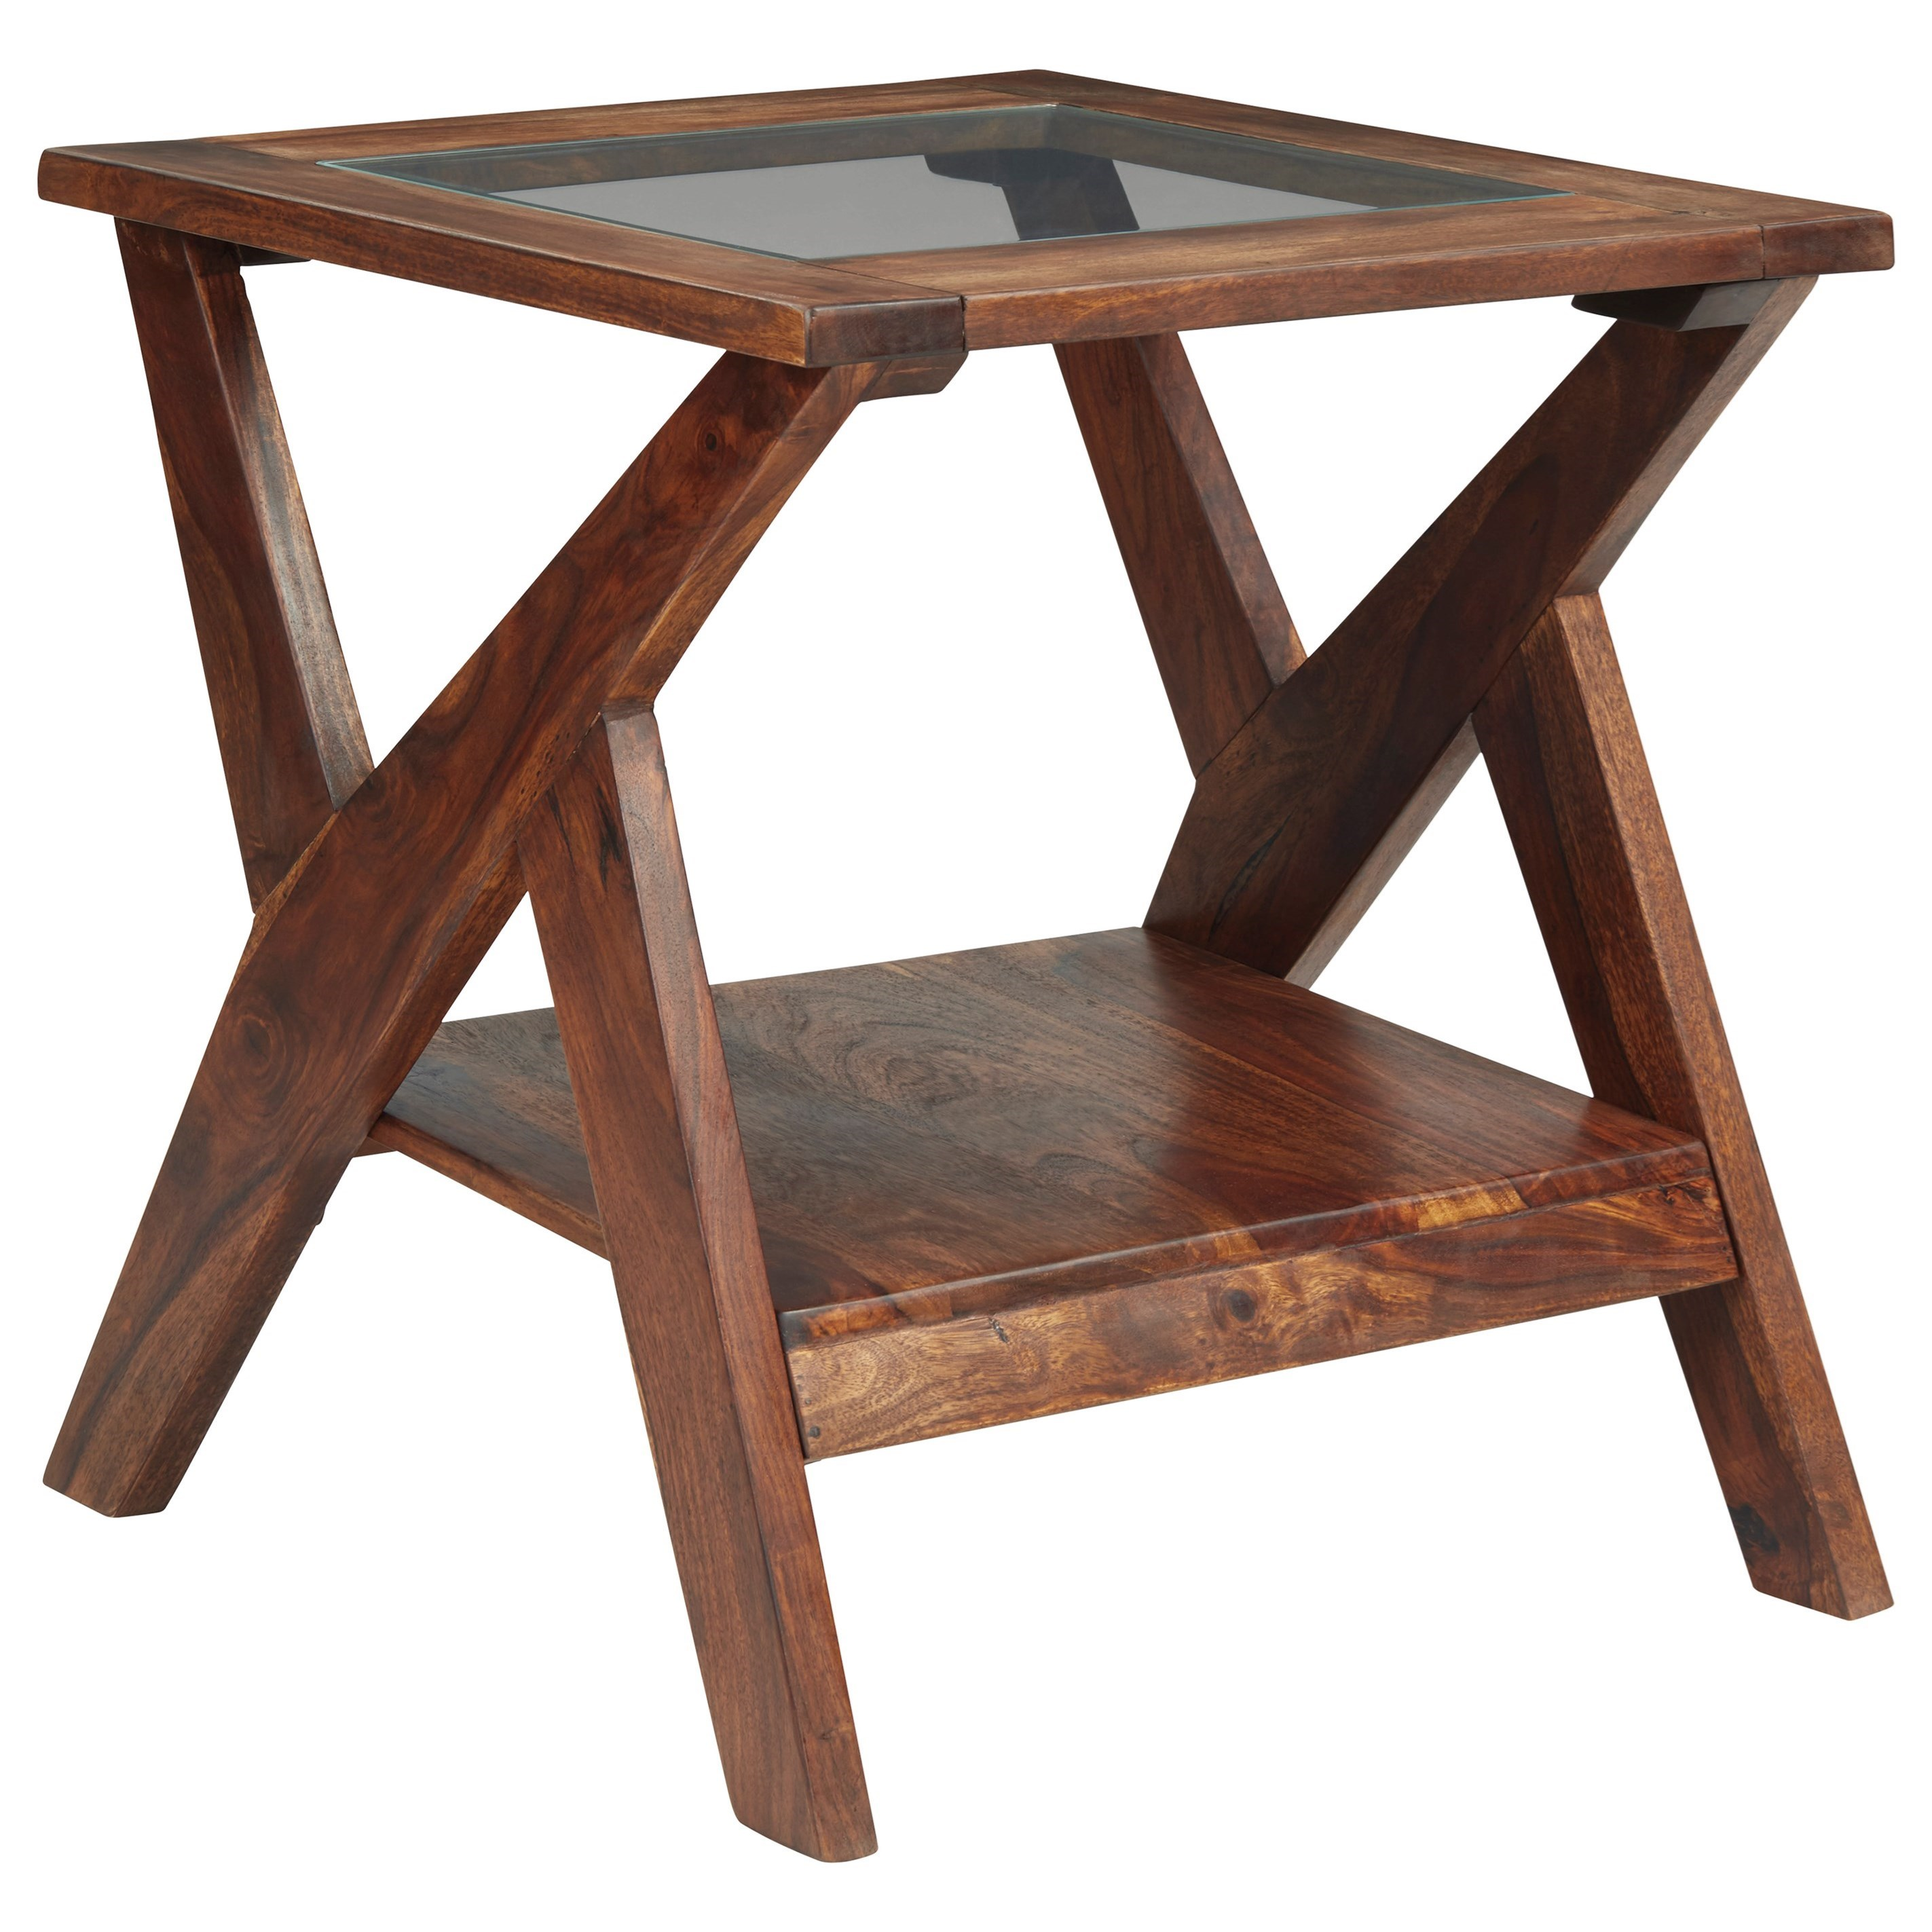 Charzine Rectangular End Table by Signature Design by Ashley at HomeWorld Furniture